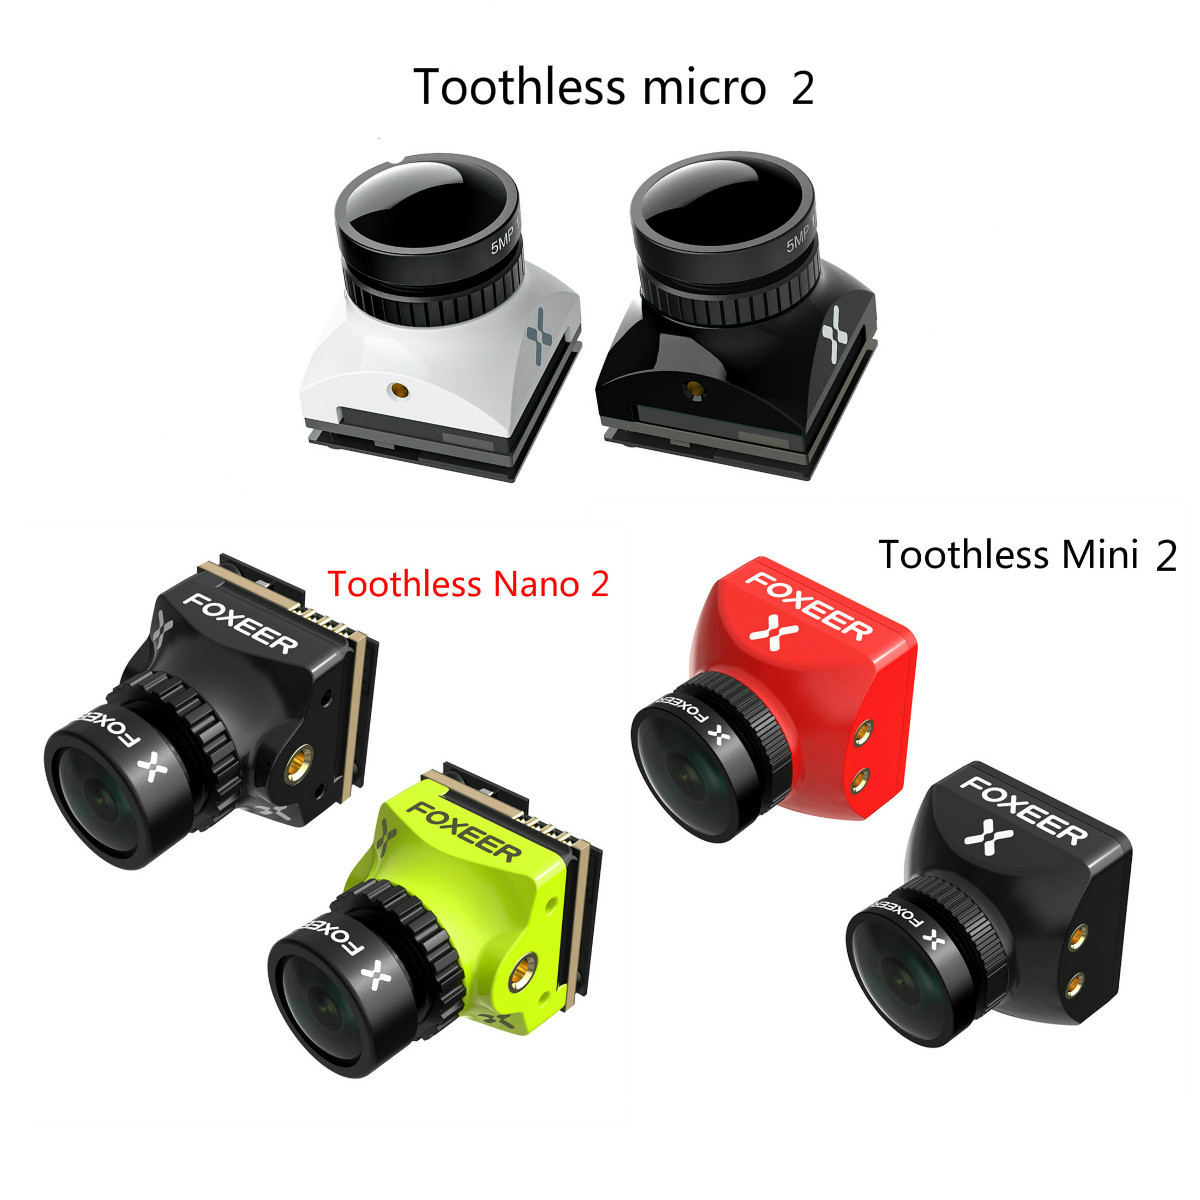 Foxeer Toothless Nano 2 Toothless Mini/micro 1.7mm /1.8mm/2.1mm 1200TVL 1/2 CMOS FPV Camera HDR 1/2 CMOS Sensor For Racing Drone